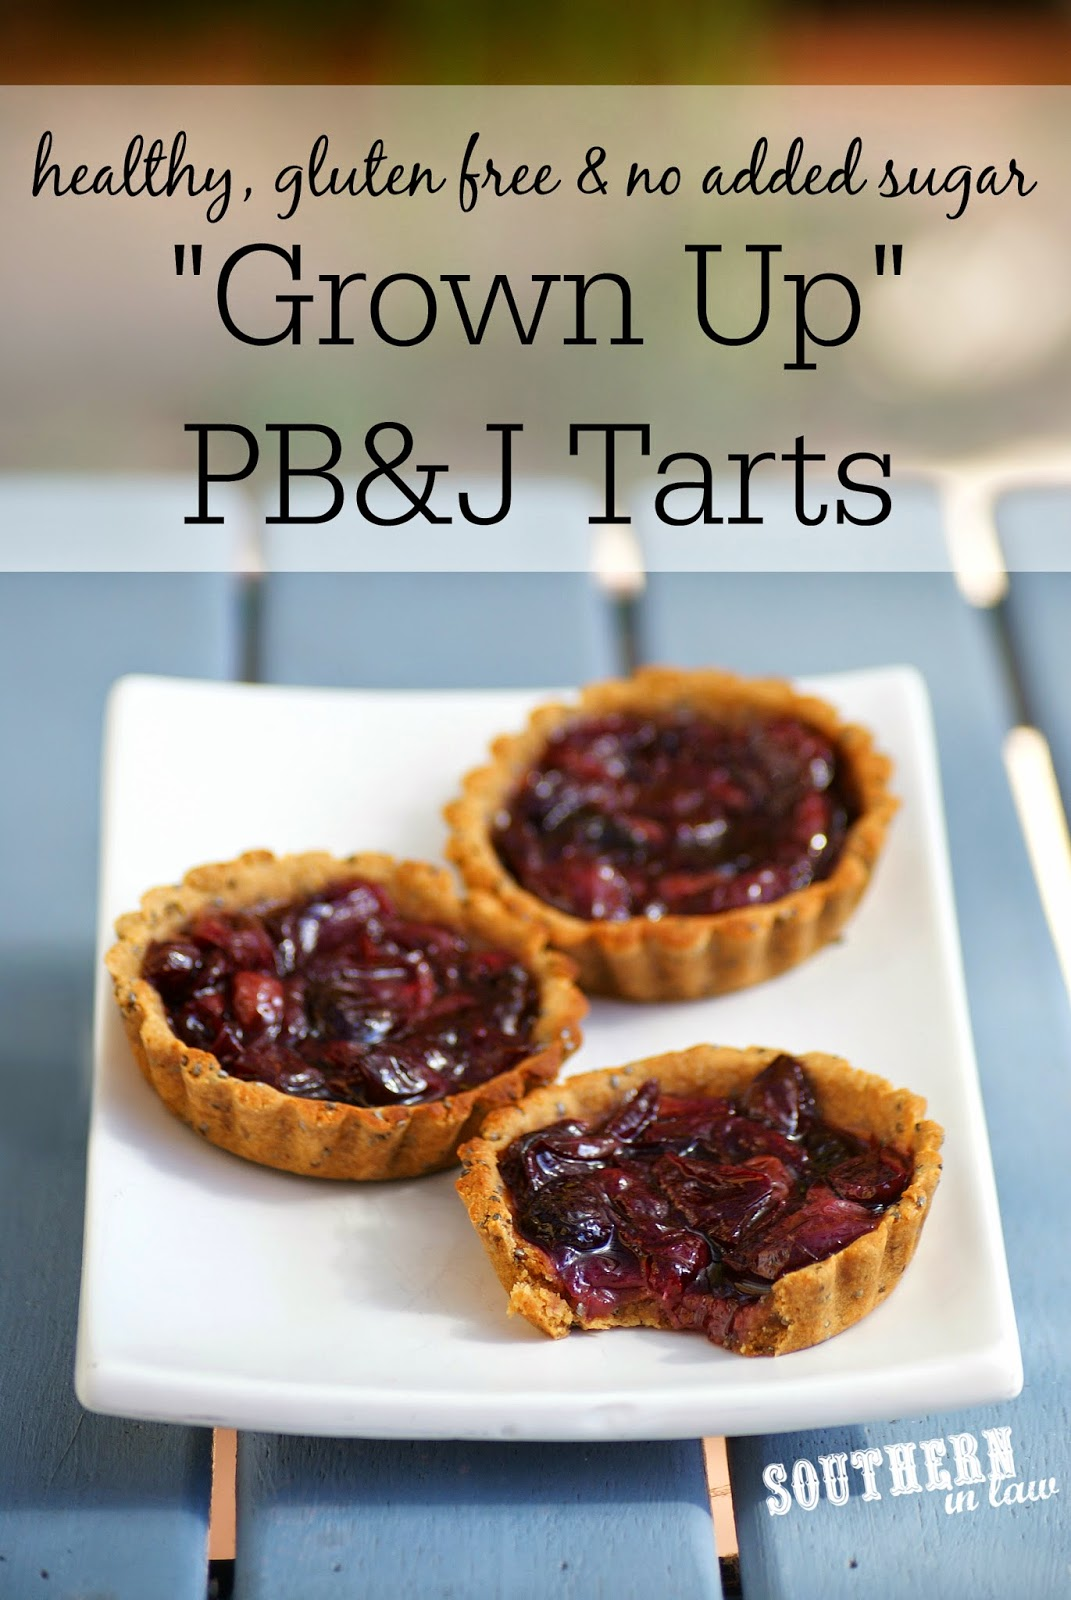 Grown Up Healthy Peanut Butter and Jelly Tarts Recipe - gluten free, refined sugar free, clean eating friendly, healthy, low fat